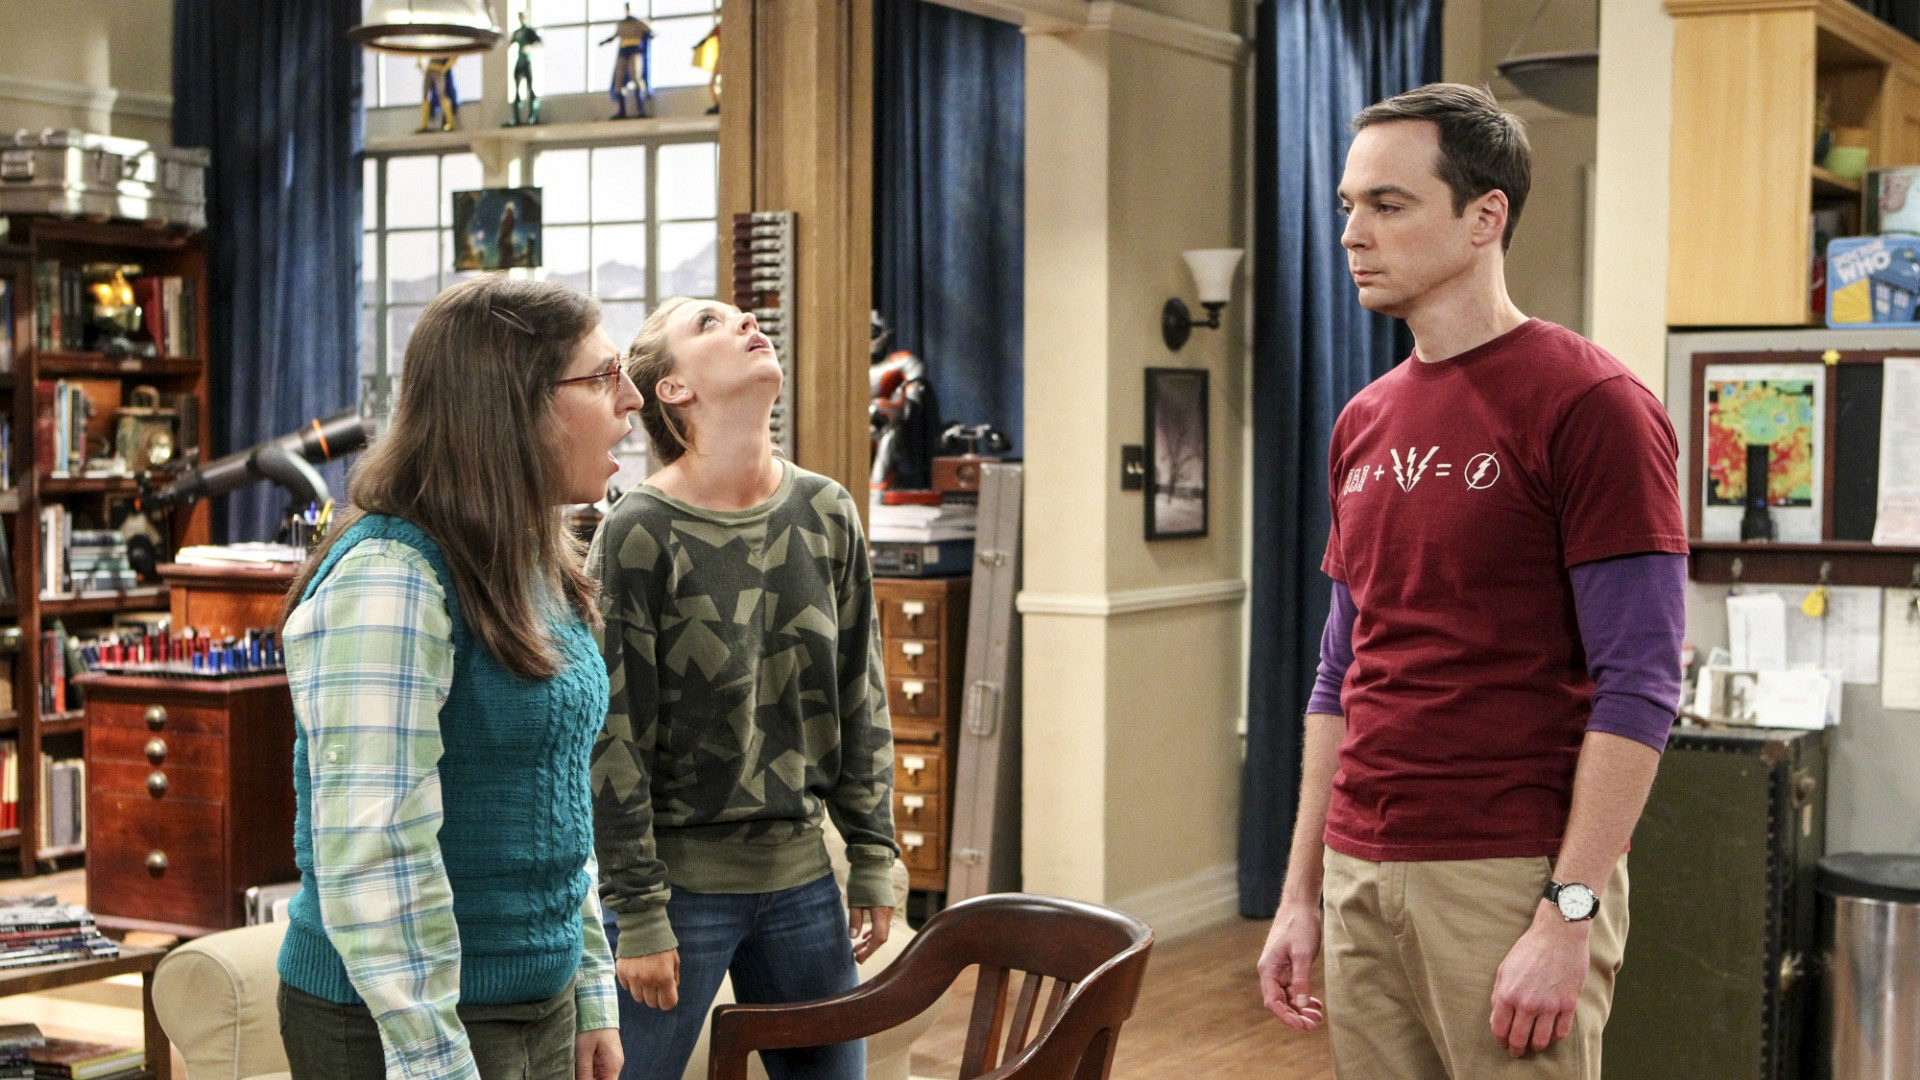 Sheldon and Amy continue to bicker, which exhausts Penny.